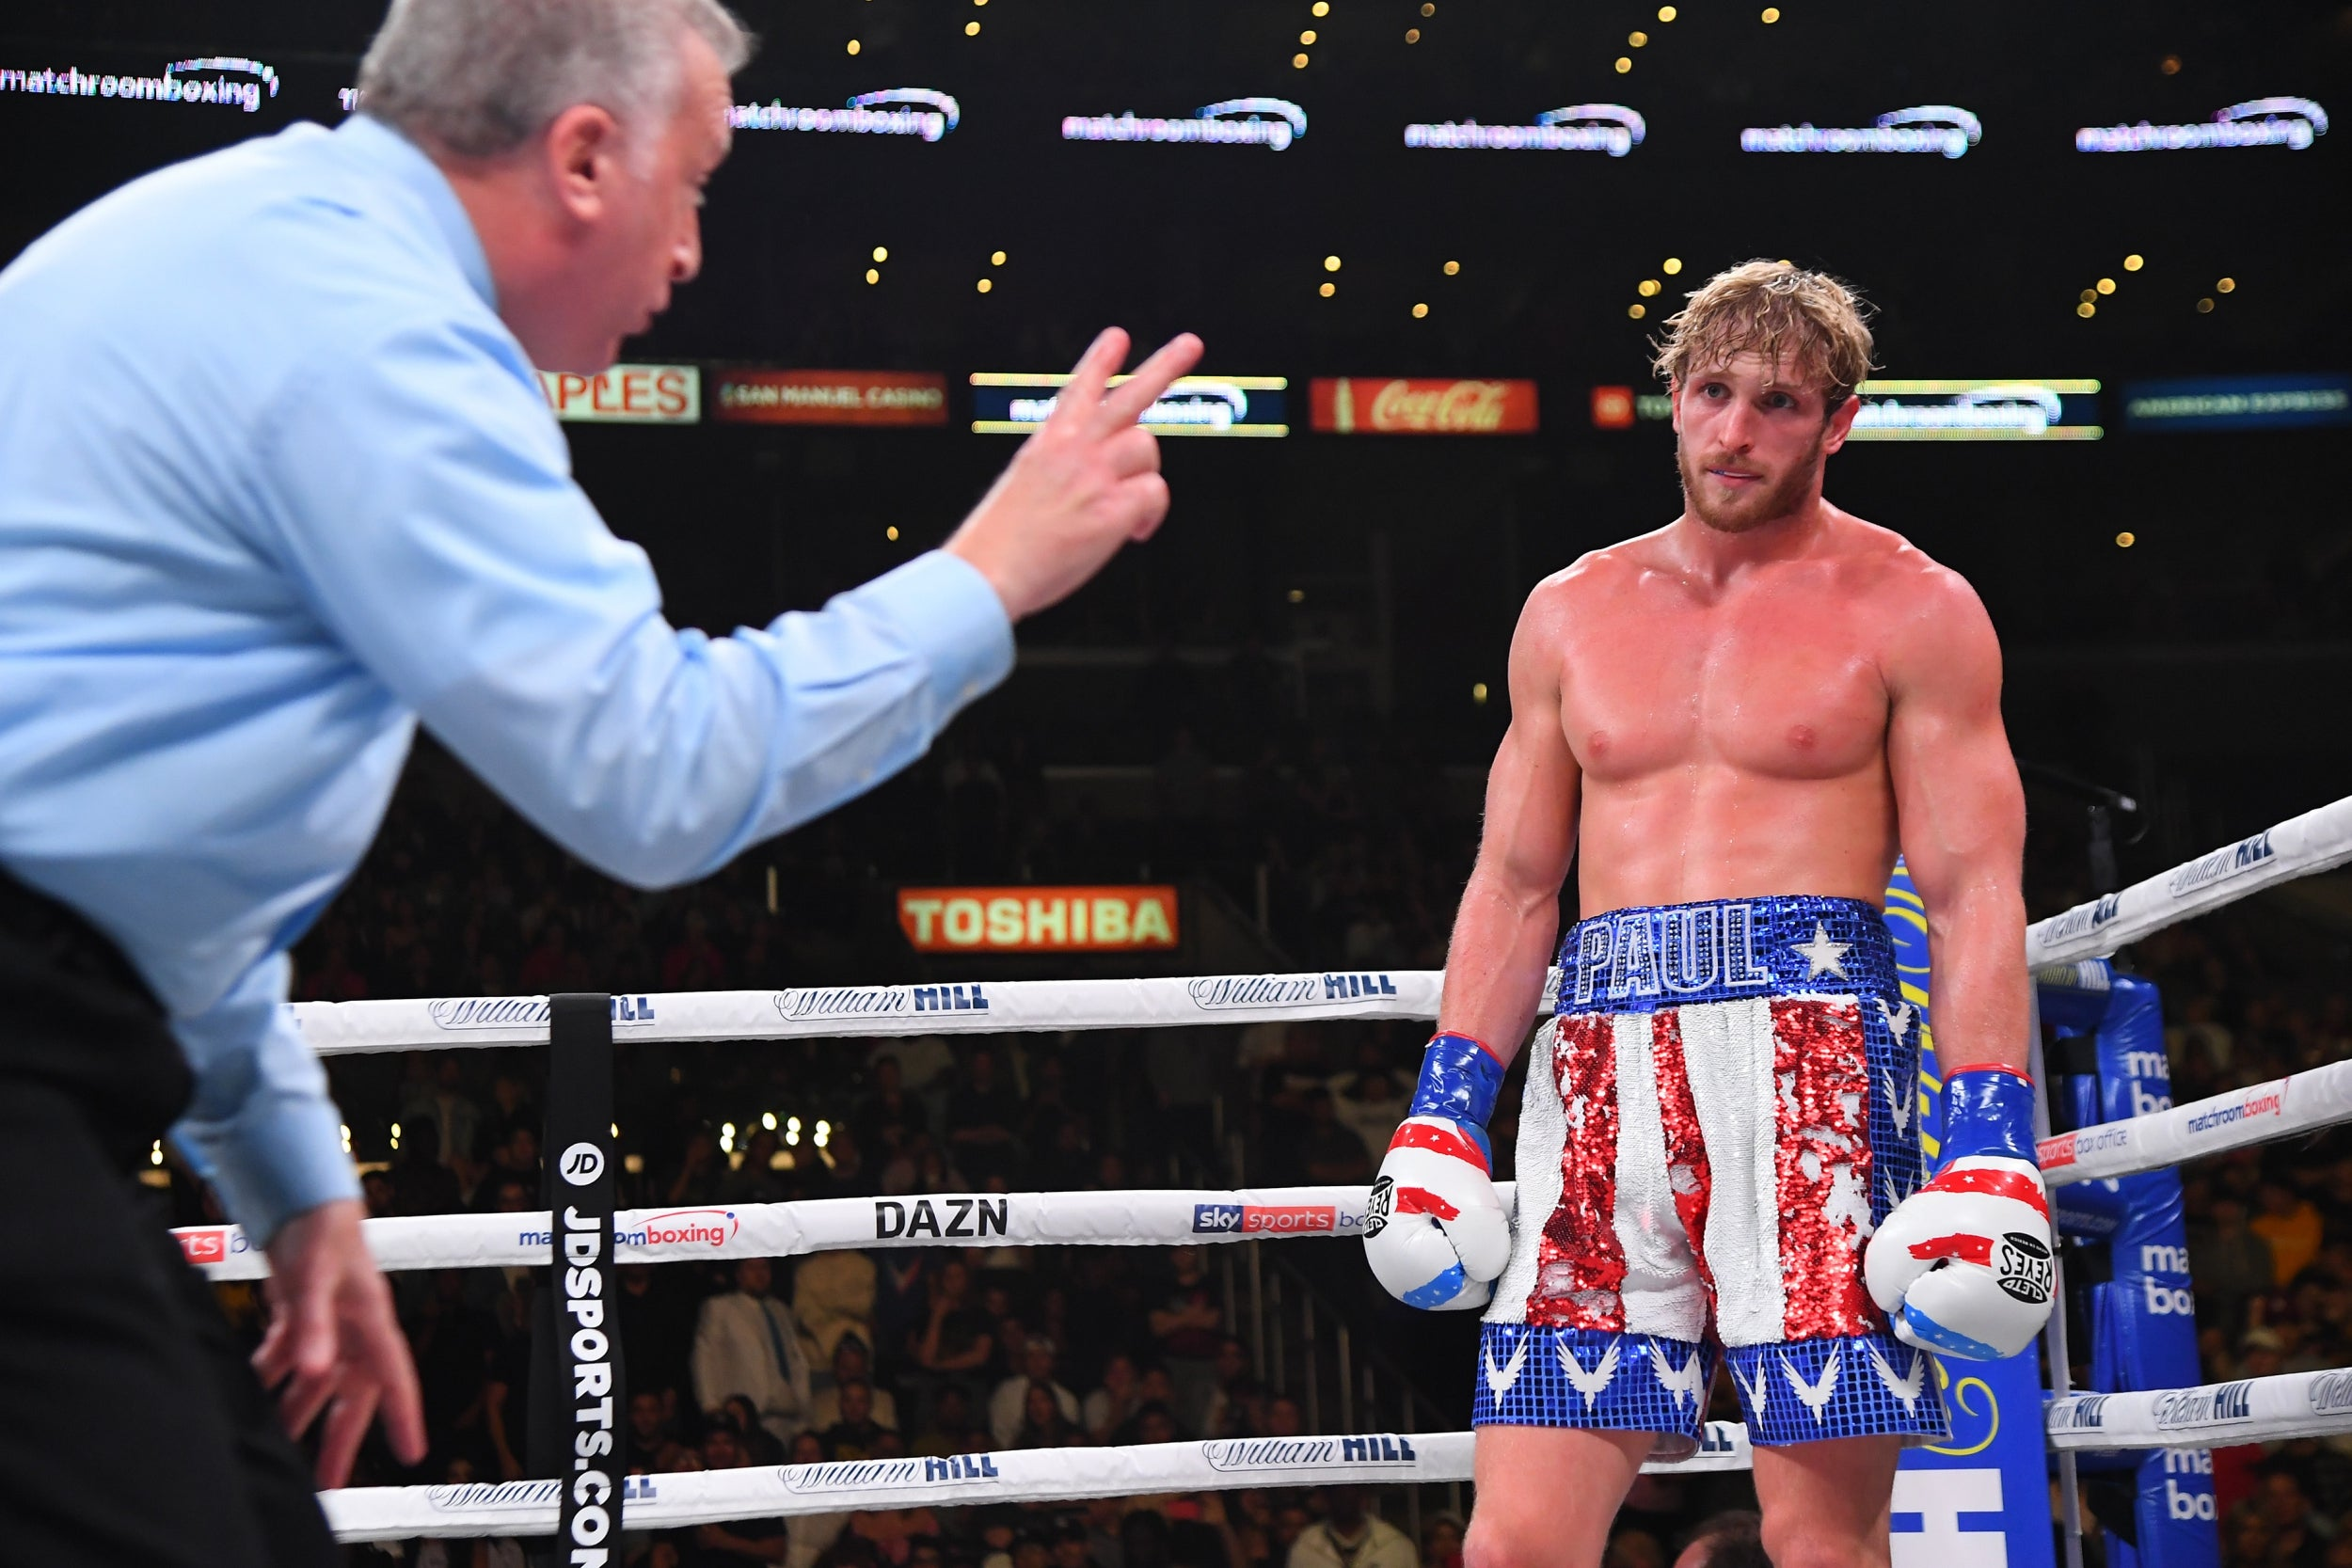 Logan Paul to appeal KSI defeat in YouTube rematch after points deduction for illegal punch